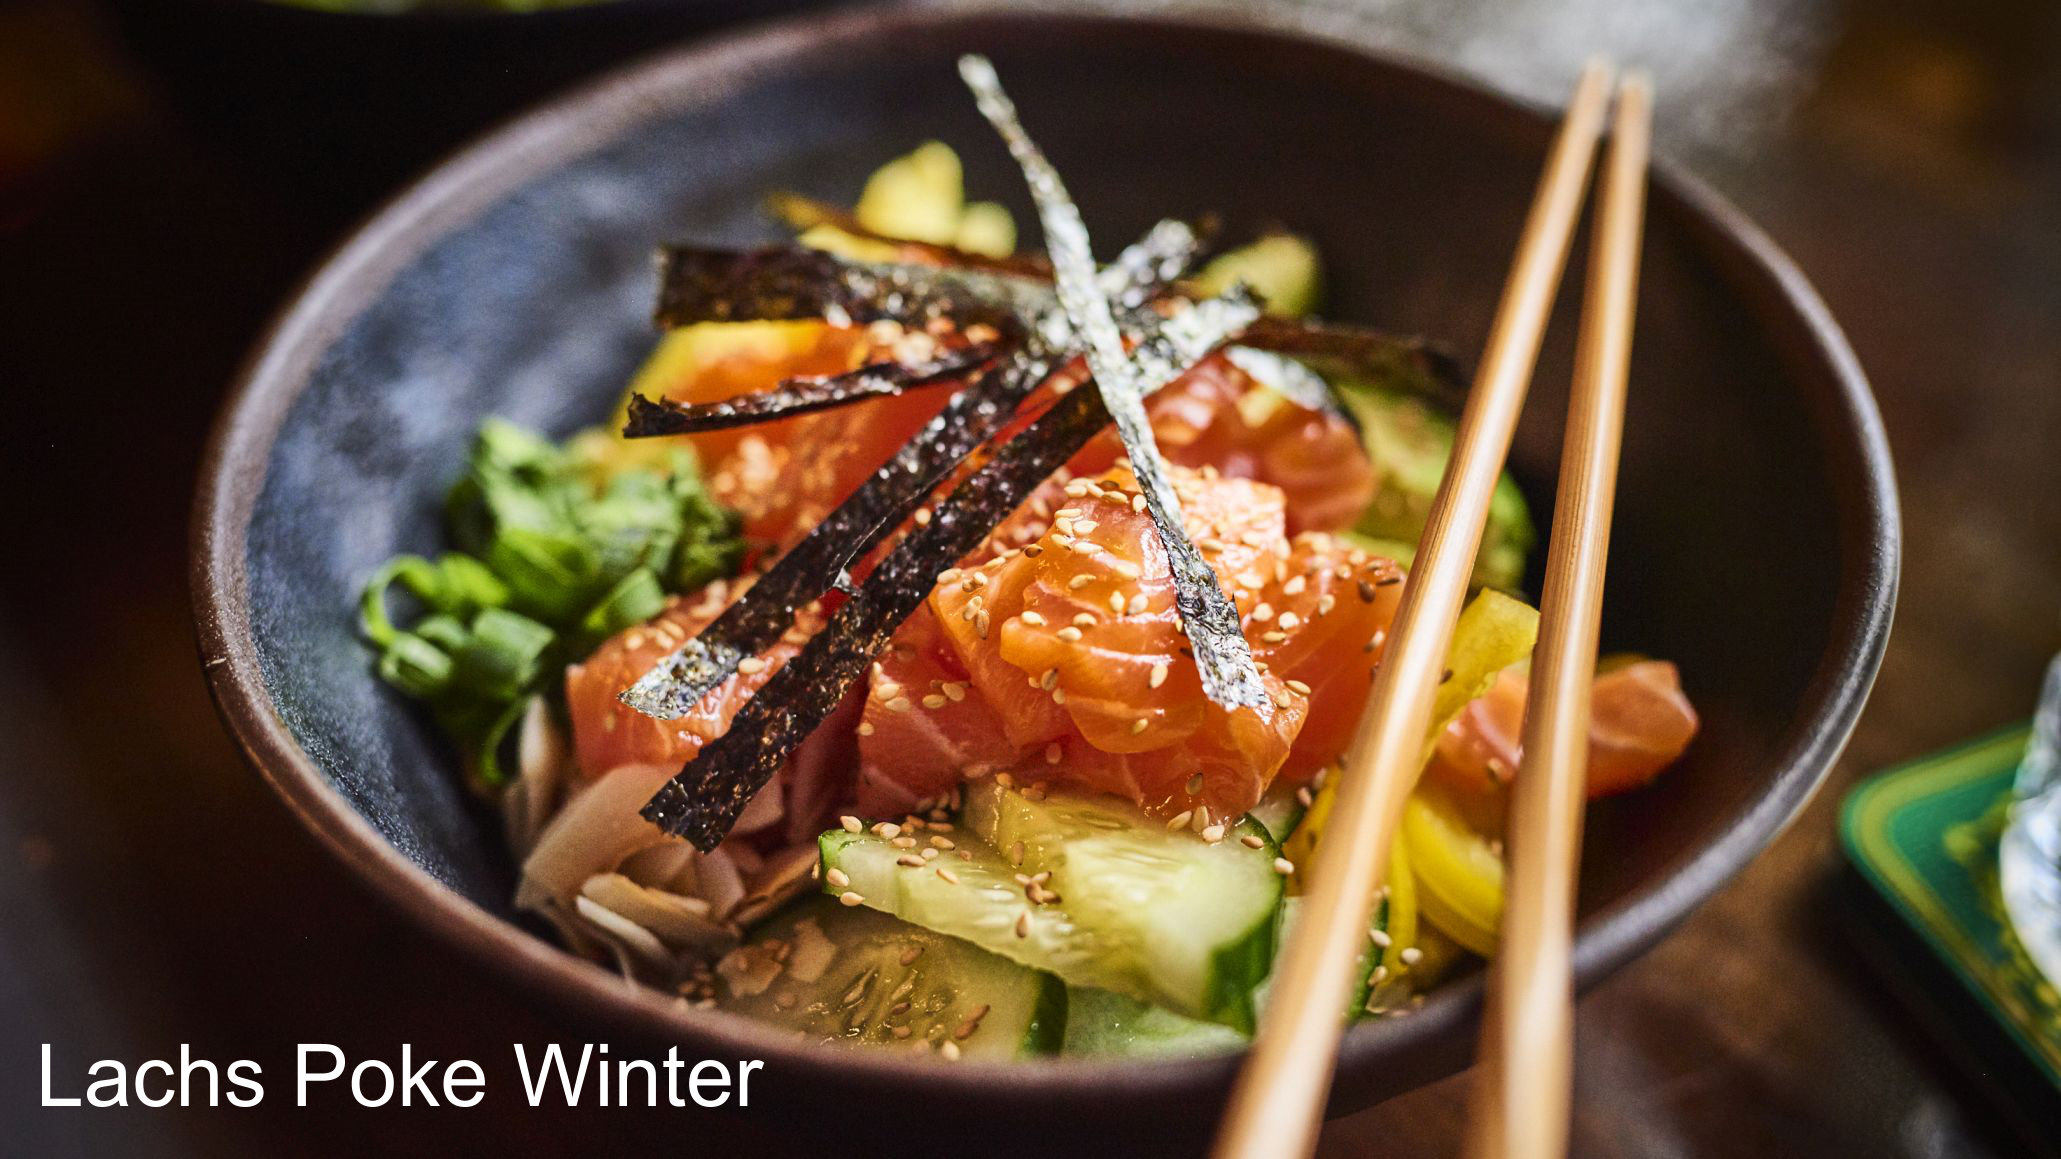 11_Lachs Poke Winter.jpg